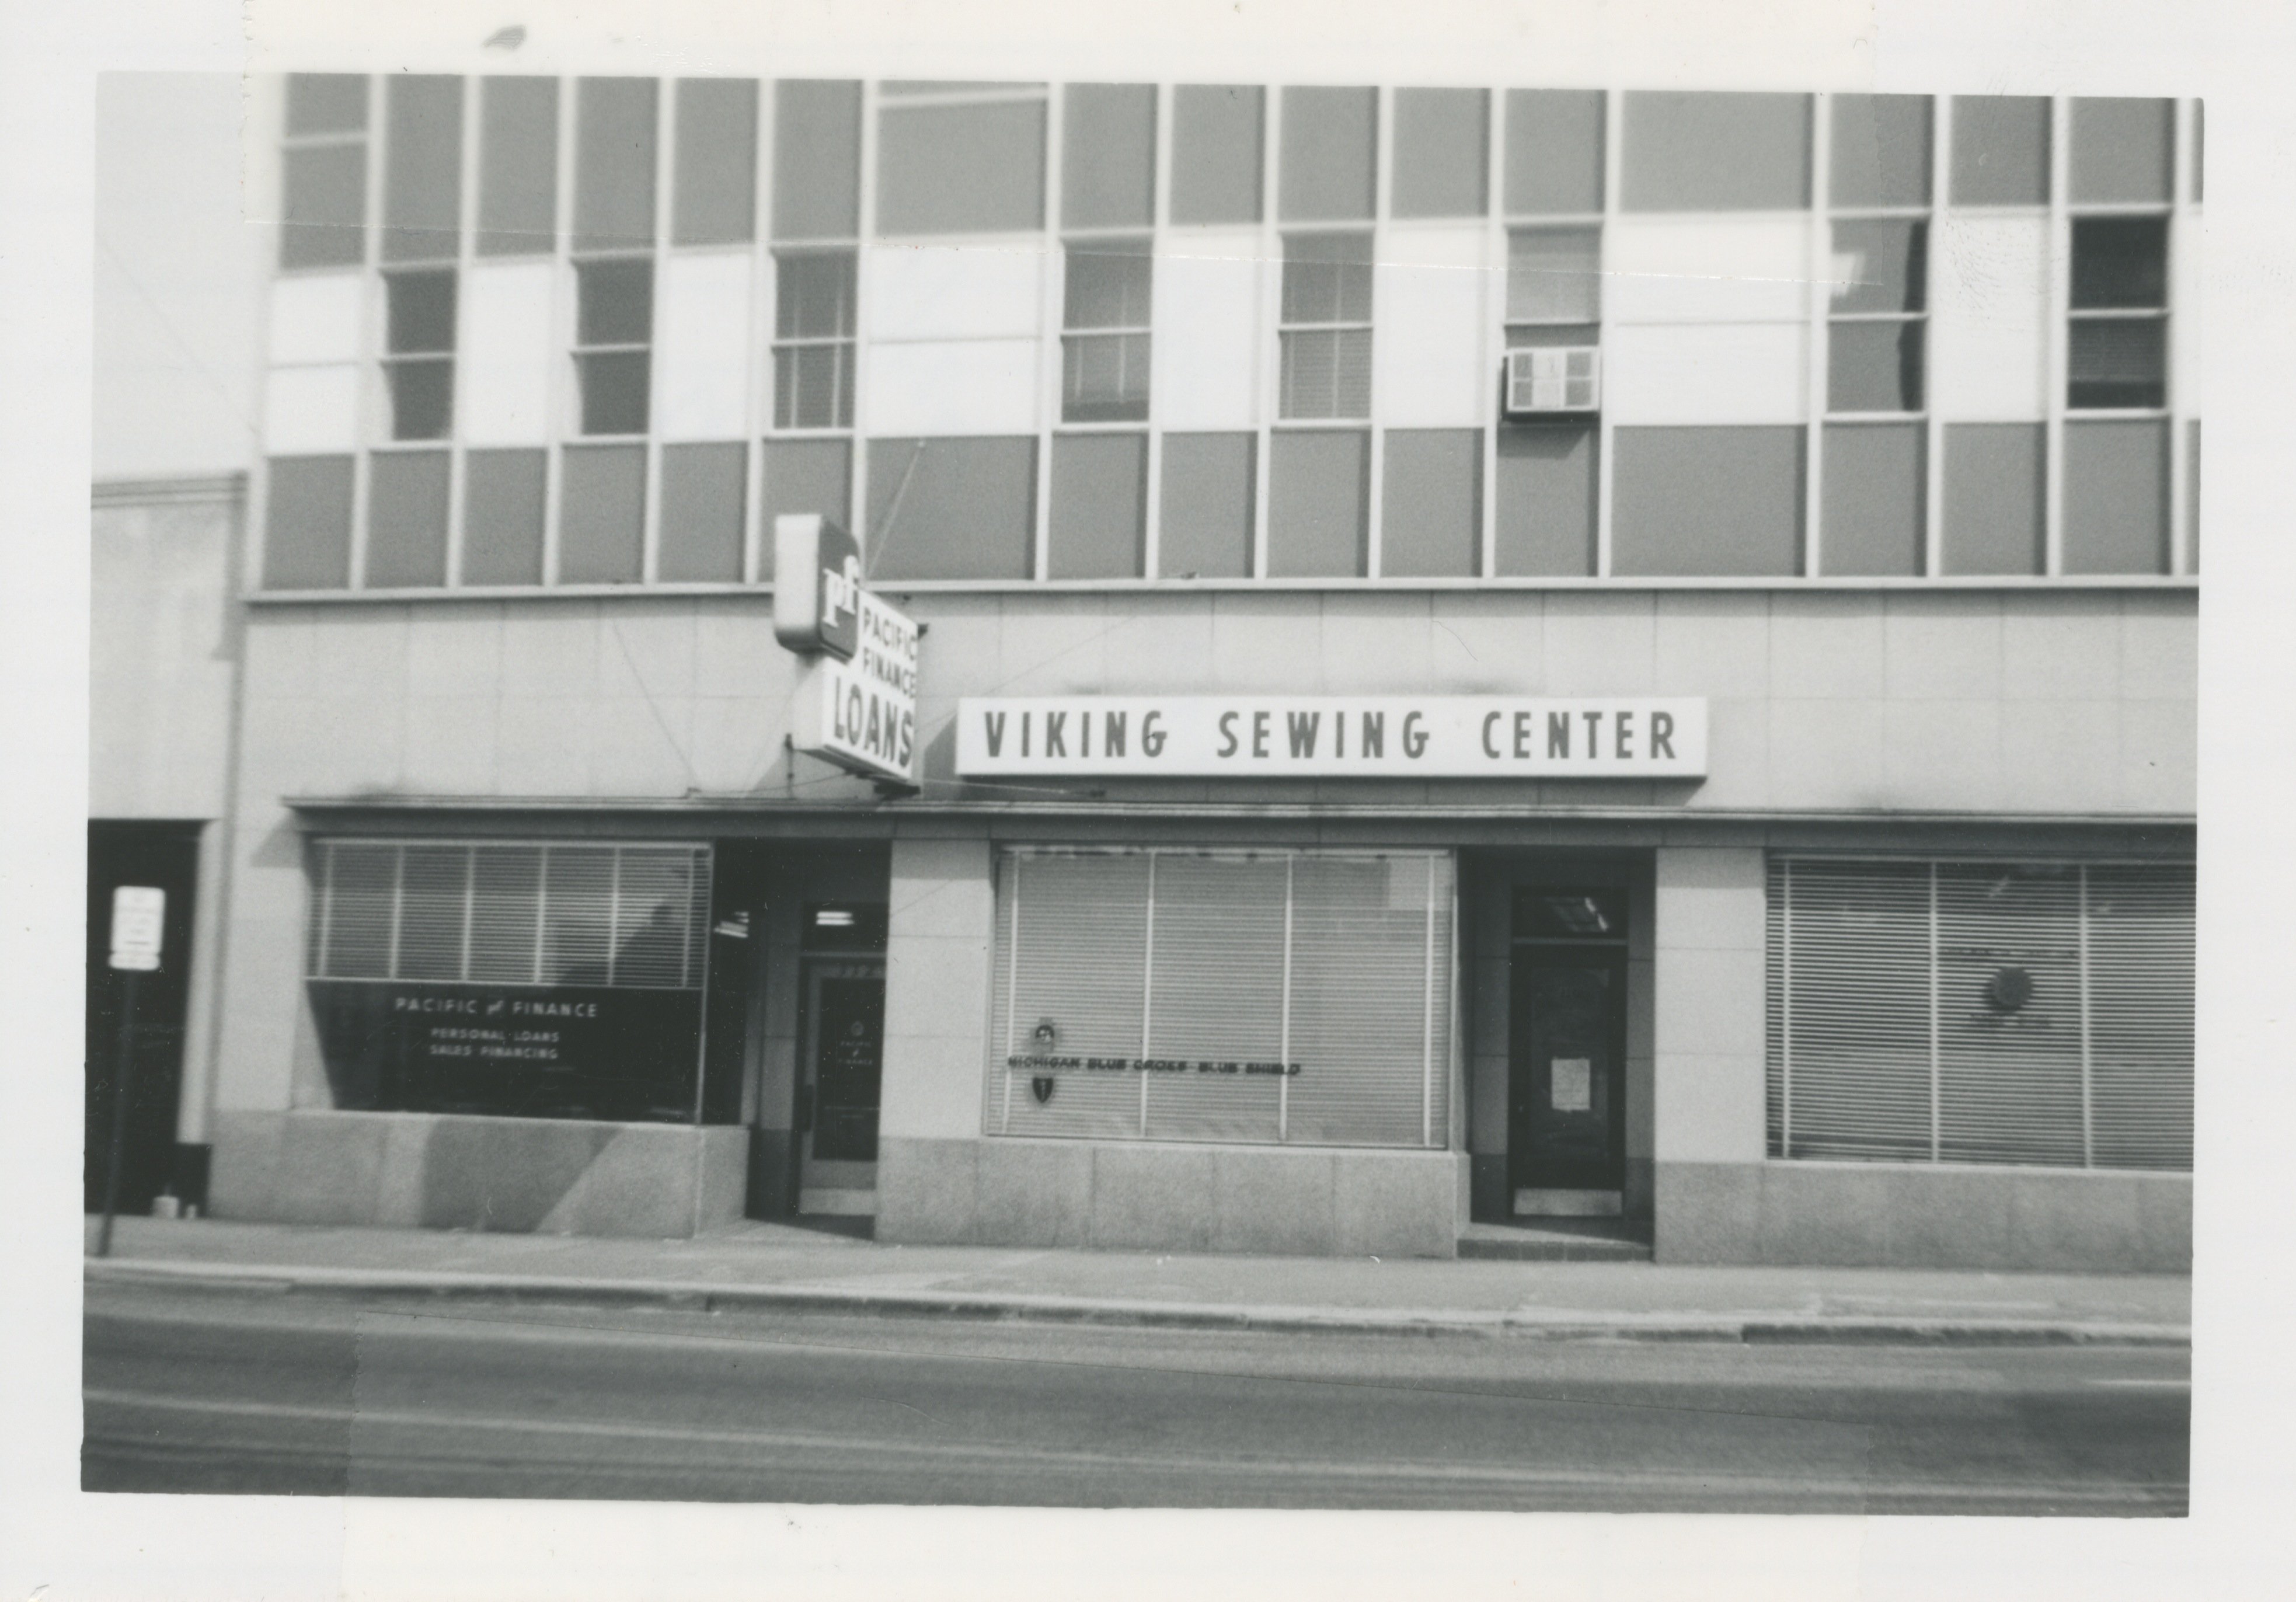 Viking Sewing Center, 1969 image